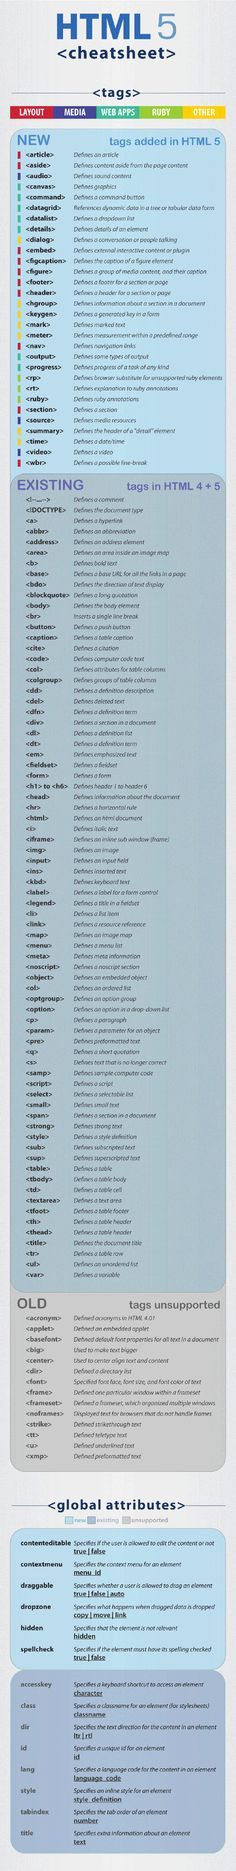 #HTML cheatsheet. It's like a bible!!! This is totally going to come in handy at work--print please.